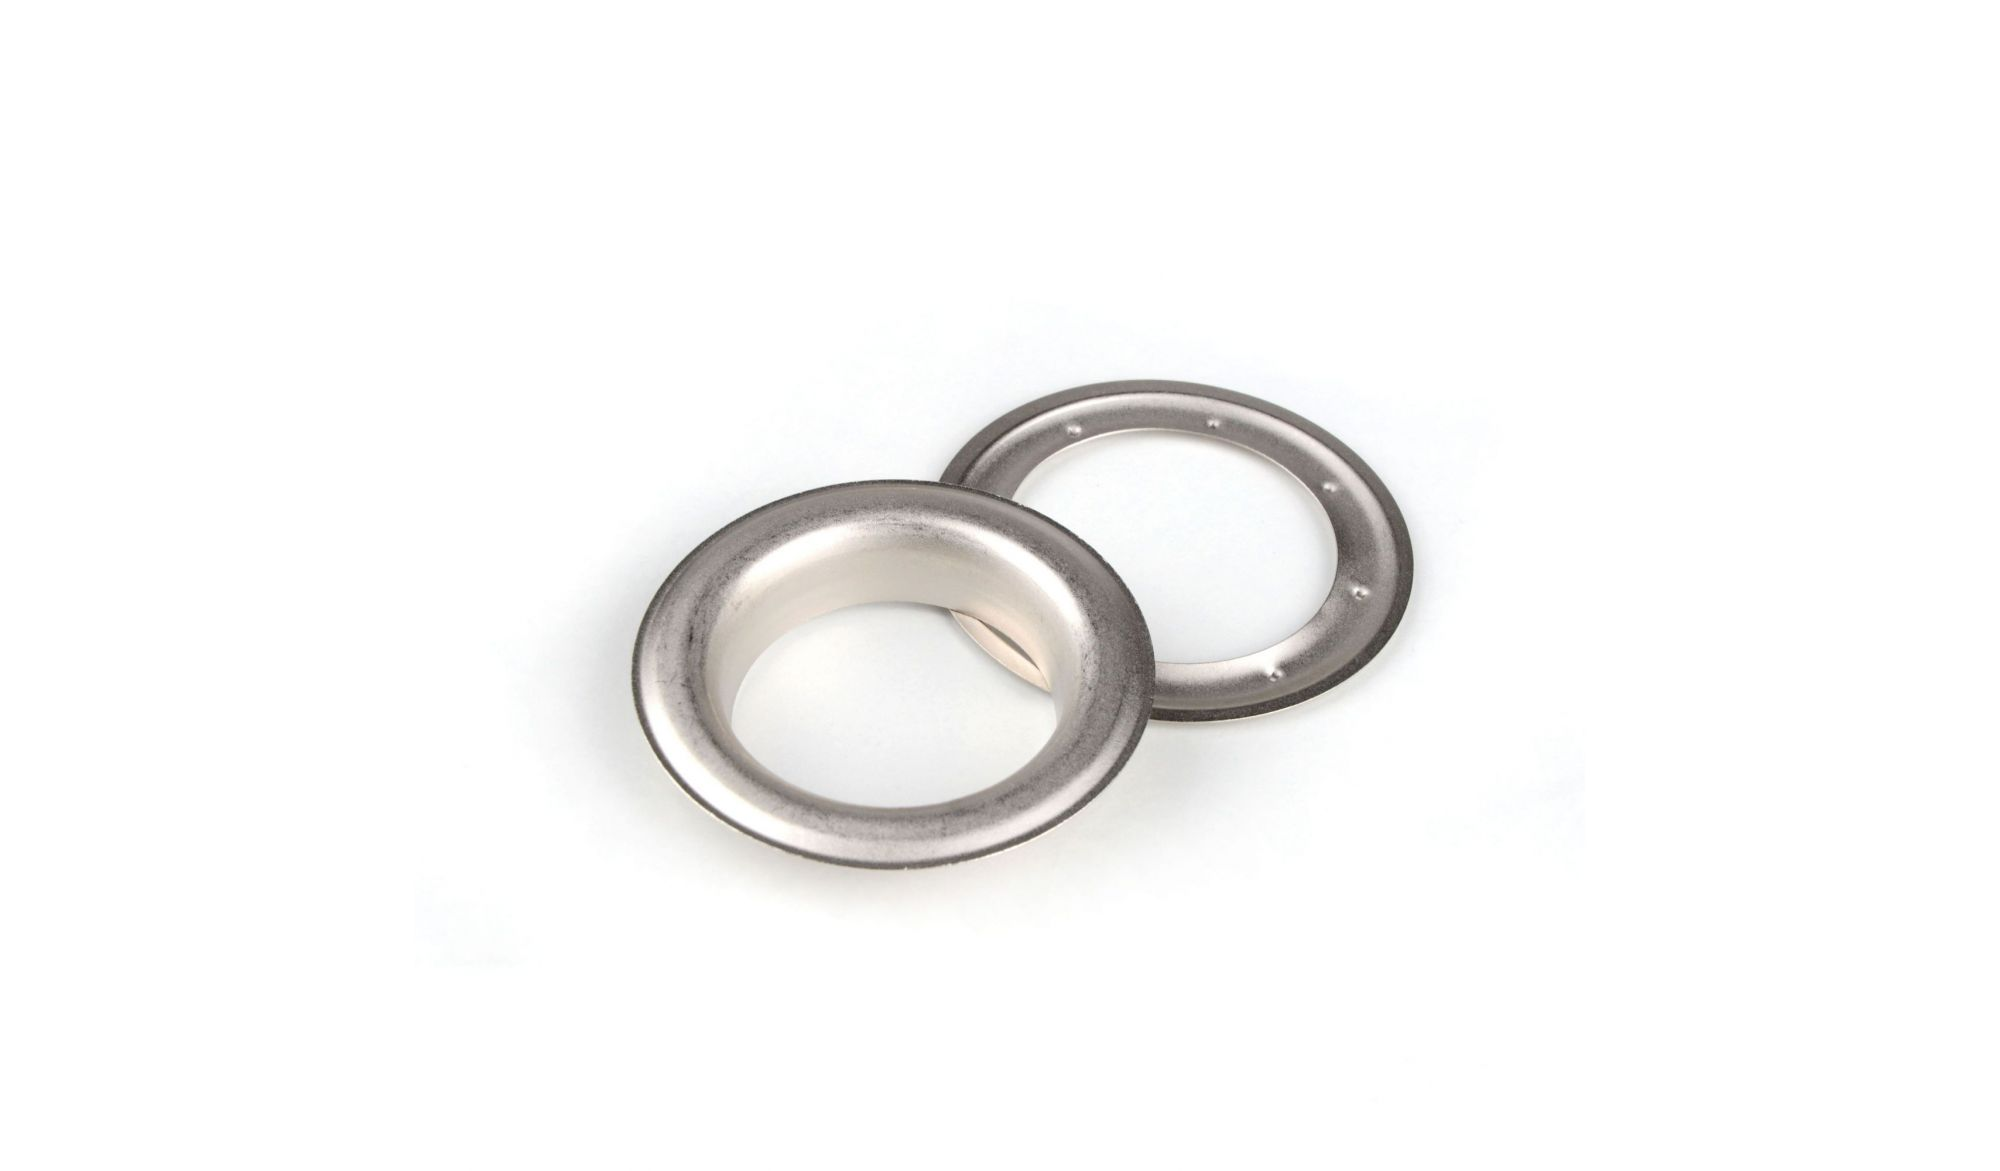 DECORING 40 MM Satin Nickel - eyelets alt_dekoringi_kolor_satin nickel - Colour